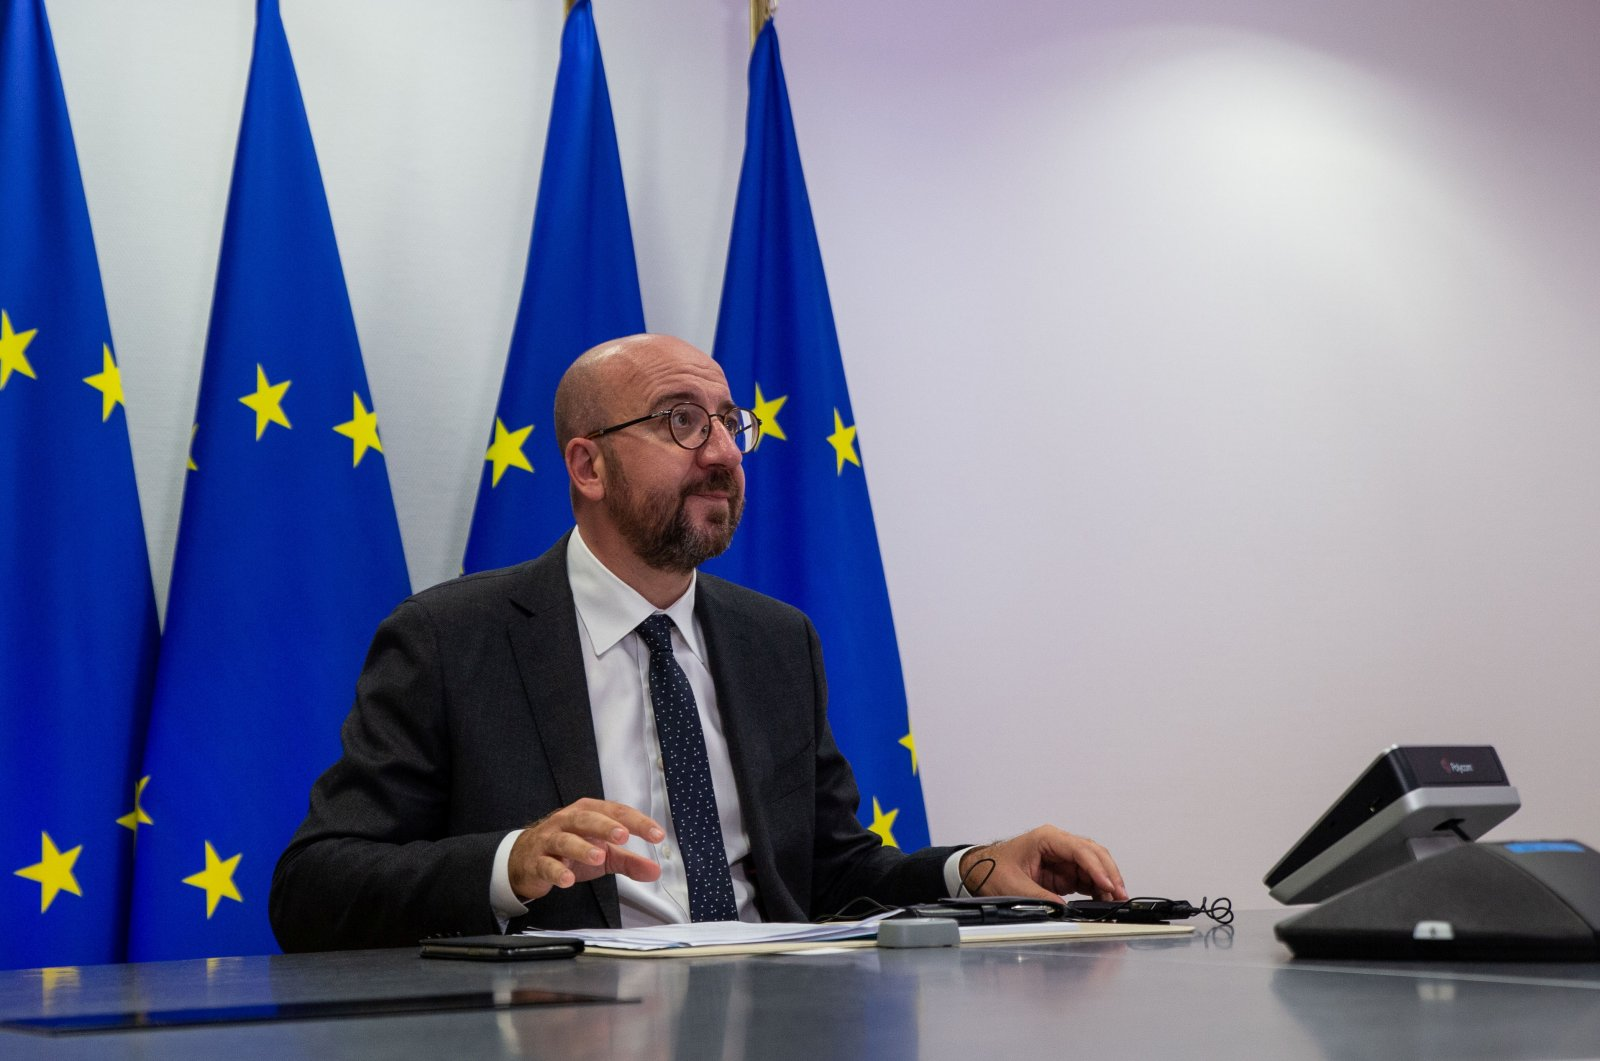 European Council President Charles Michel attends a videoconference with Turkish President Recep Tayyip Erdoğan and German Chancellor Angela Merkel at the European Council Headquarters in Brussels, Belgium, Sept. 22, 2020. (Reuters Photo)